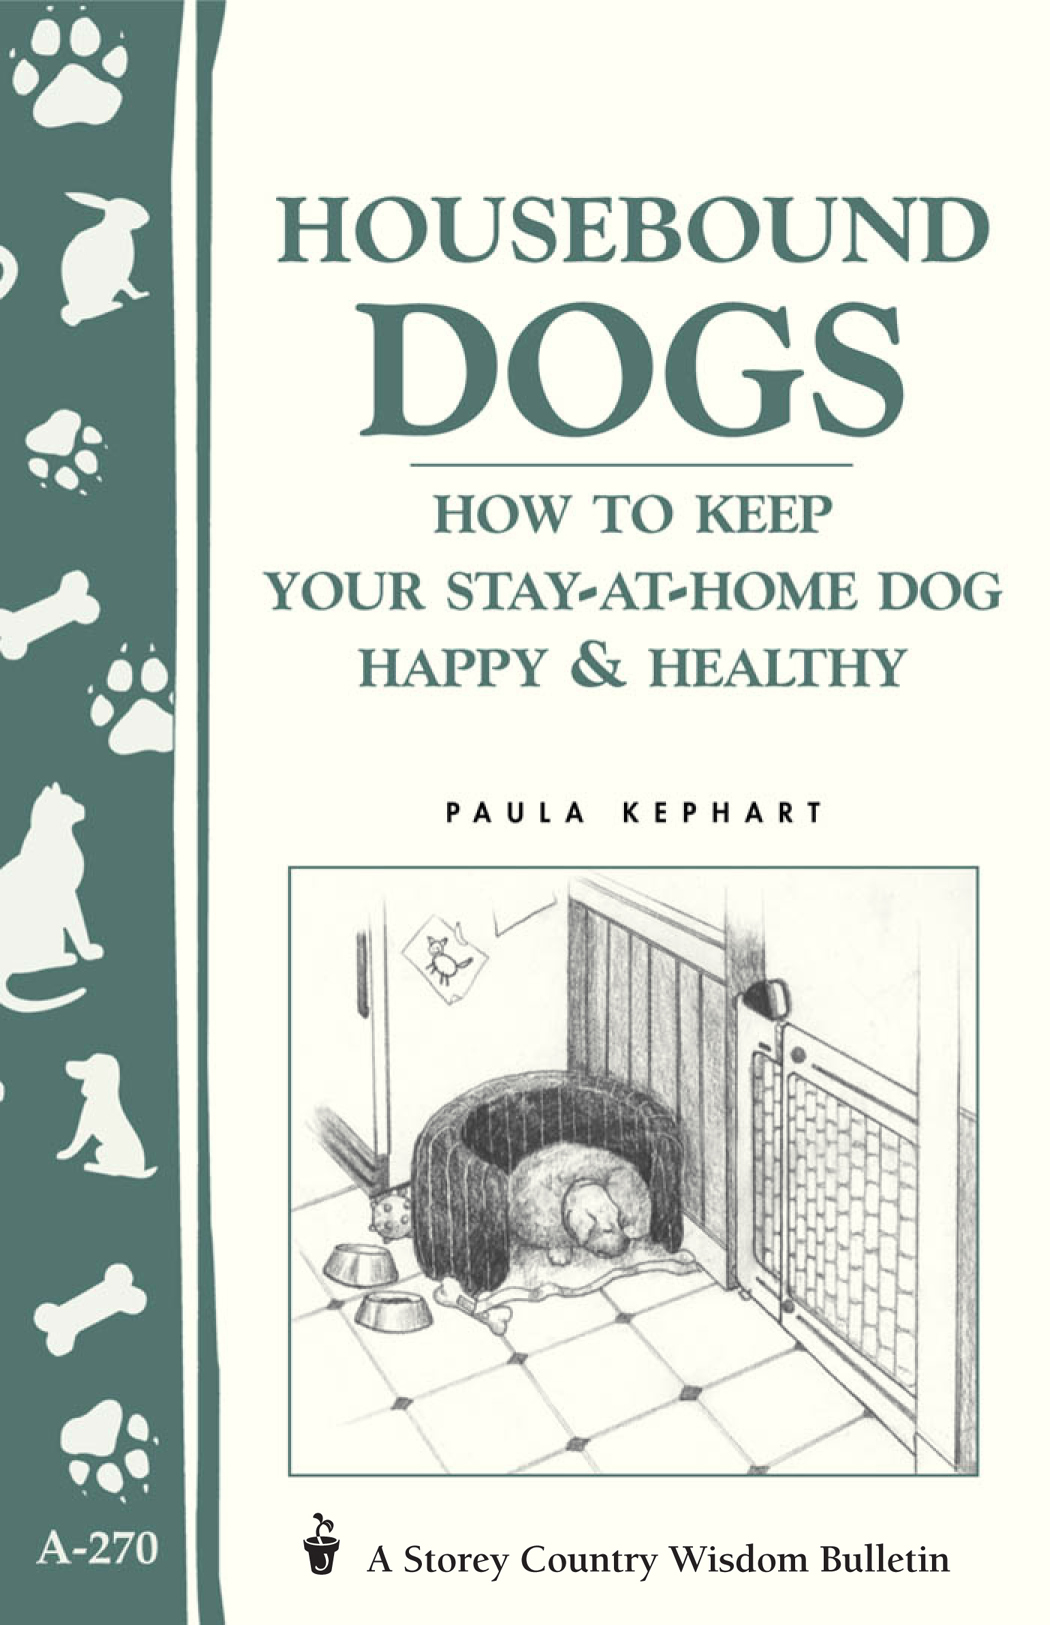 Housebound Dogs: How to Keep Your Stay-at-Home Dog Happy & Healthy (Storey's Country Wisdom Bulletin A-270) - Paula Kephart